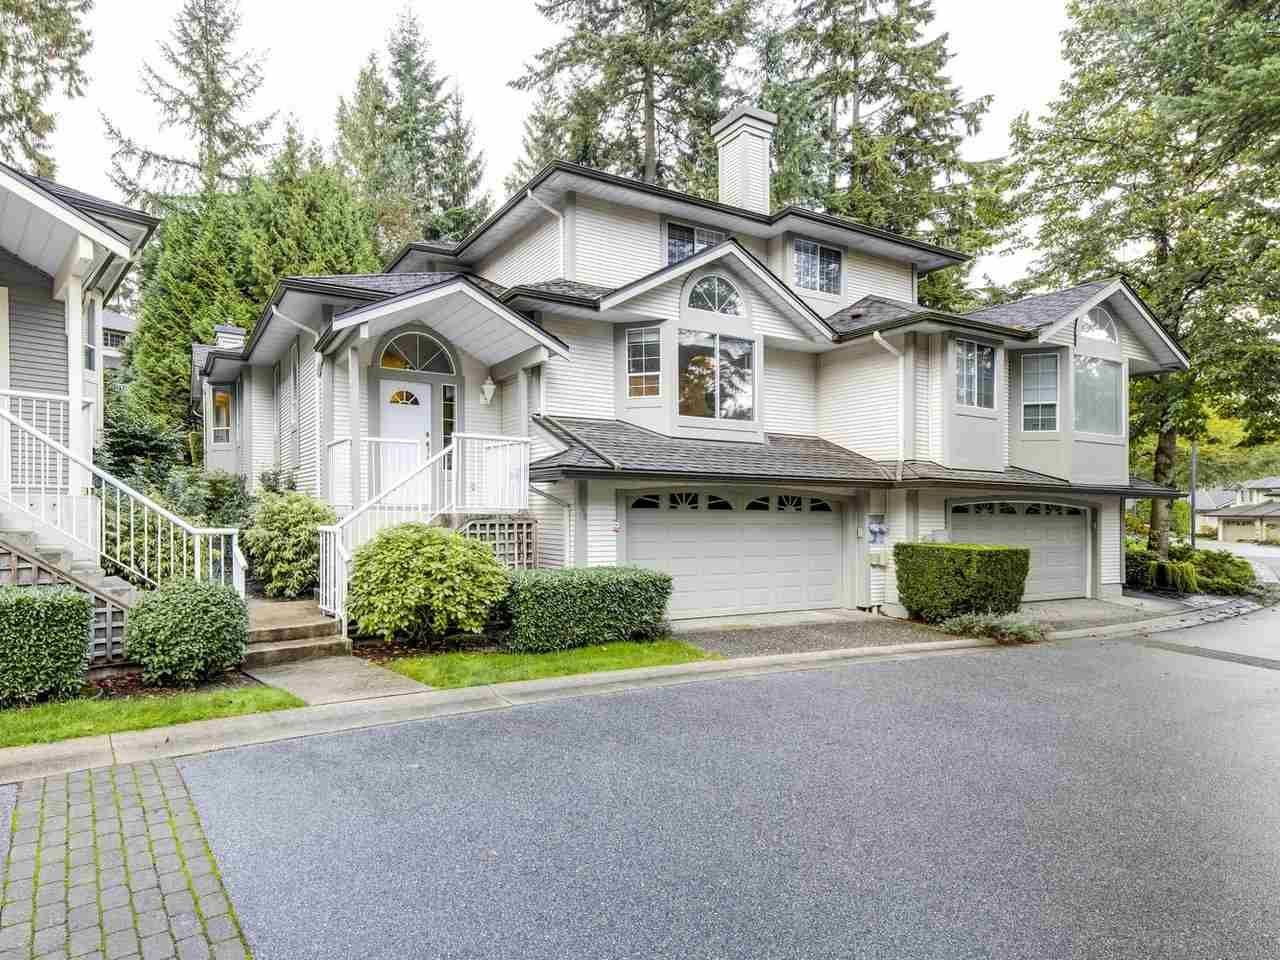 """Main Photo: 149 101 PARKSIDE Drive in Port Moody: Heritage Mountain Townhouse for sale in """"Treetops"""" : MLS®# R2509832"""